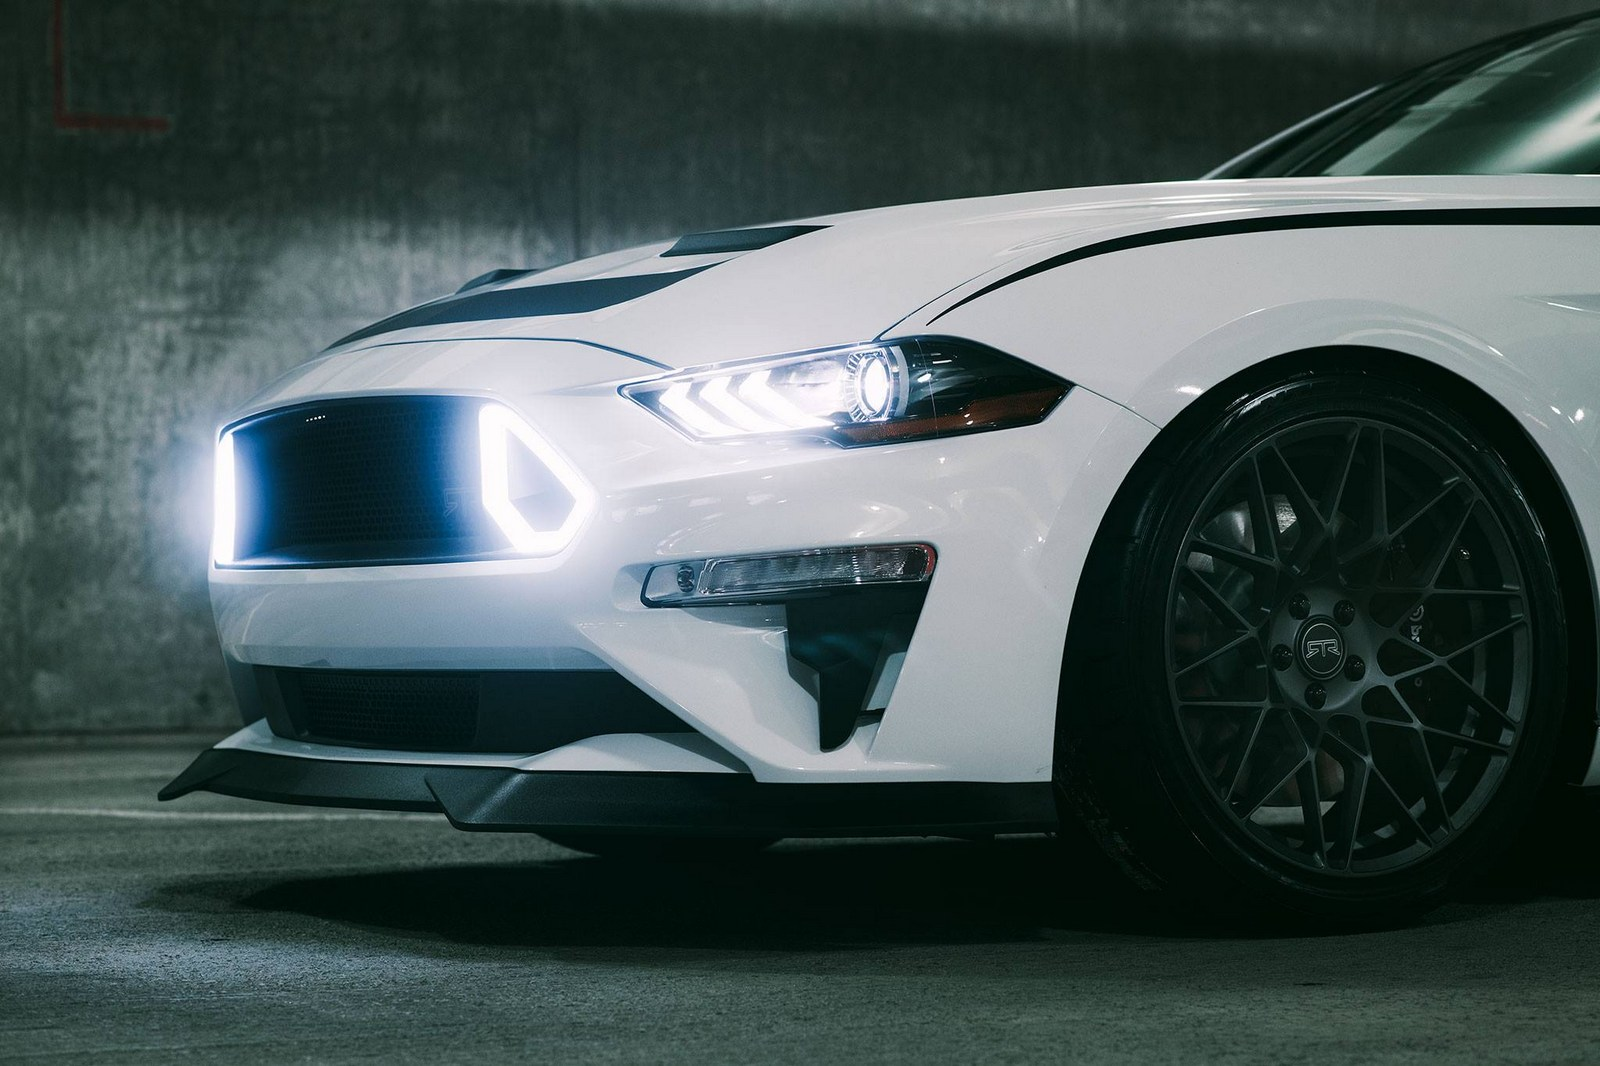 2018 ford mustang rtr bringing 700 hp to sema. Black Bedroom Furniture Sets. Home Design Ideas